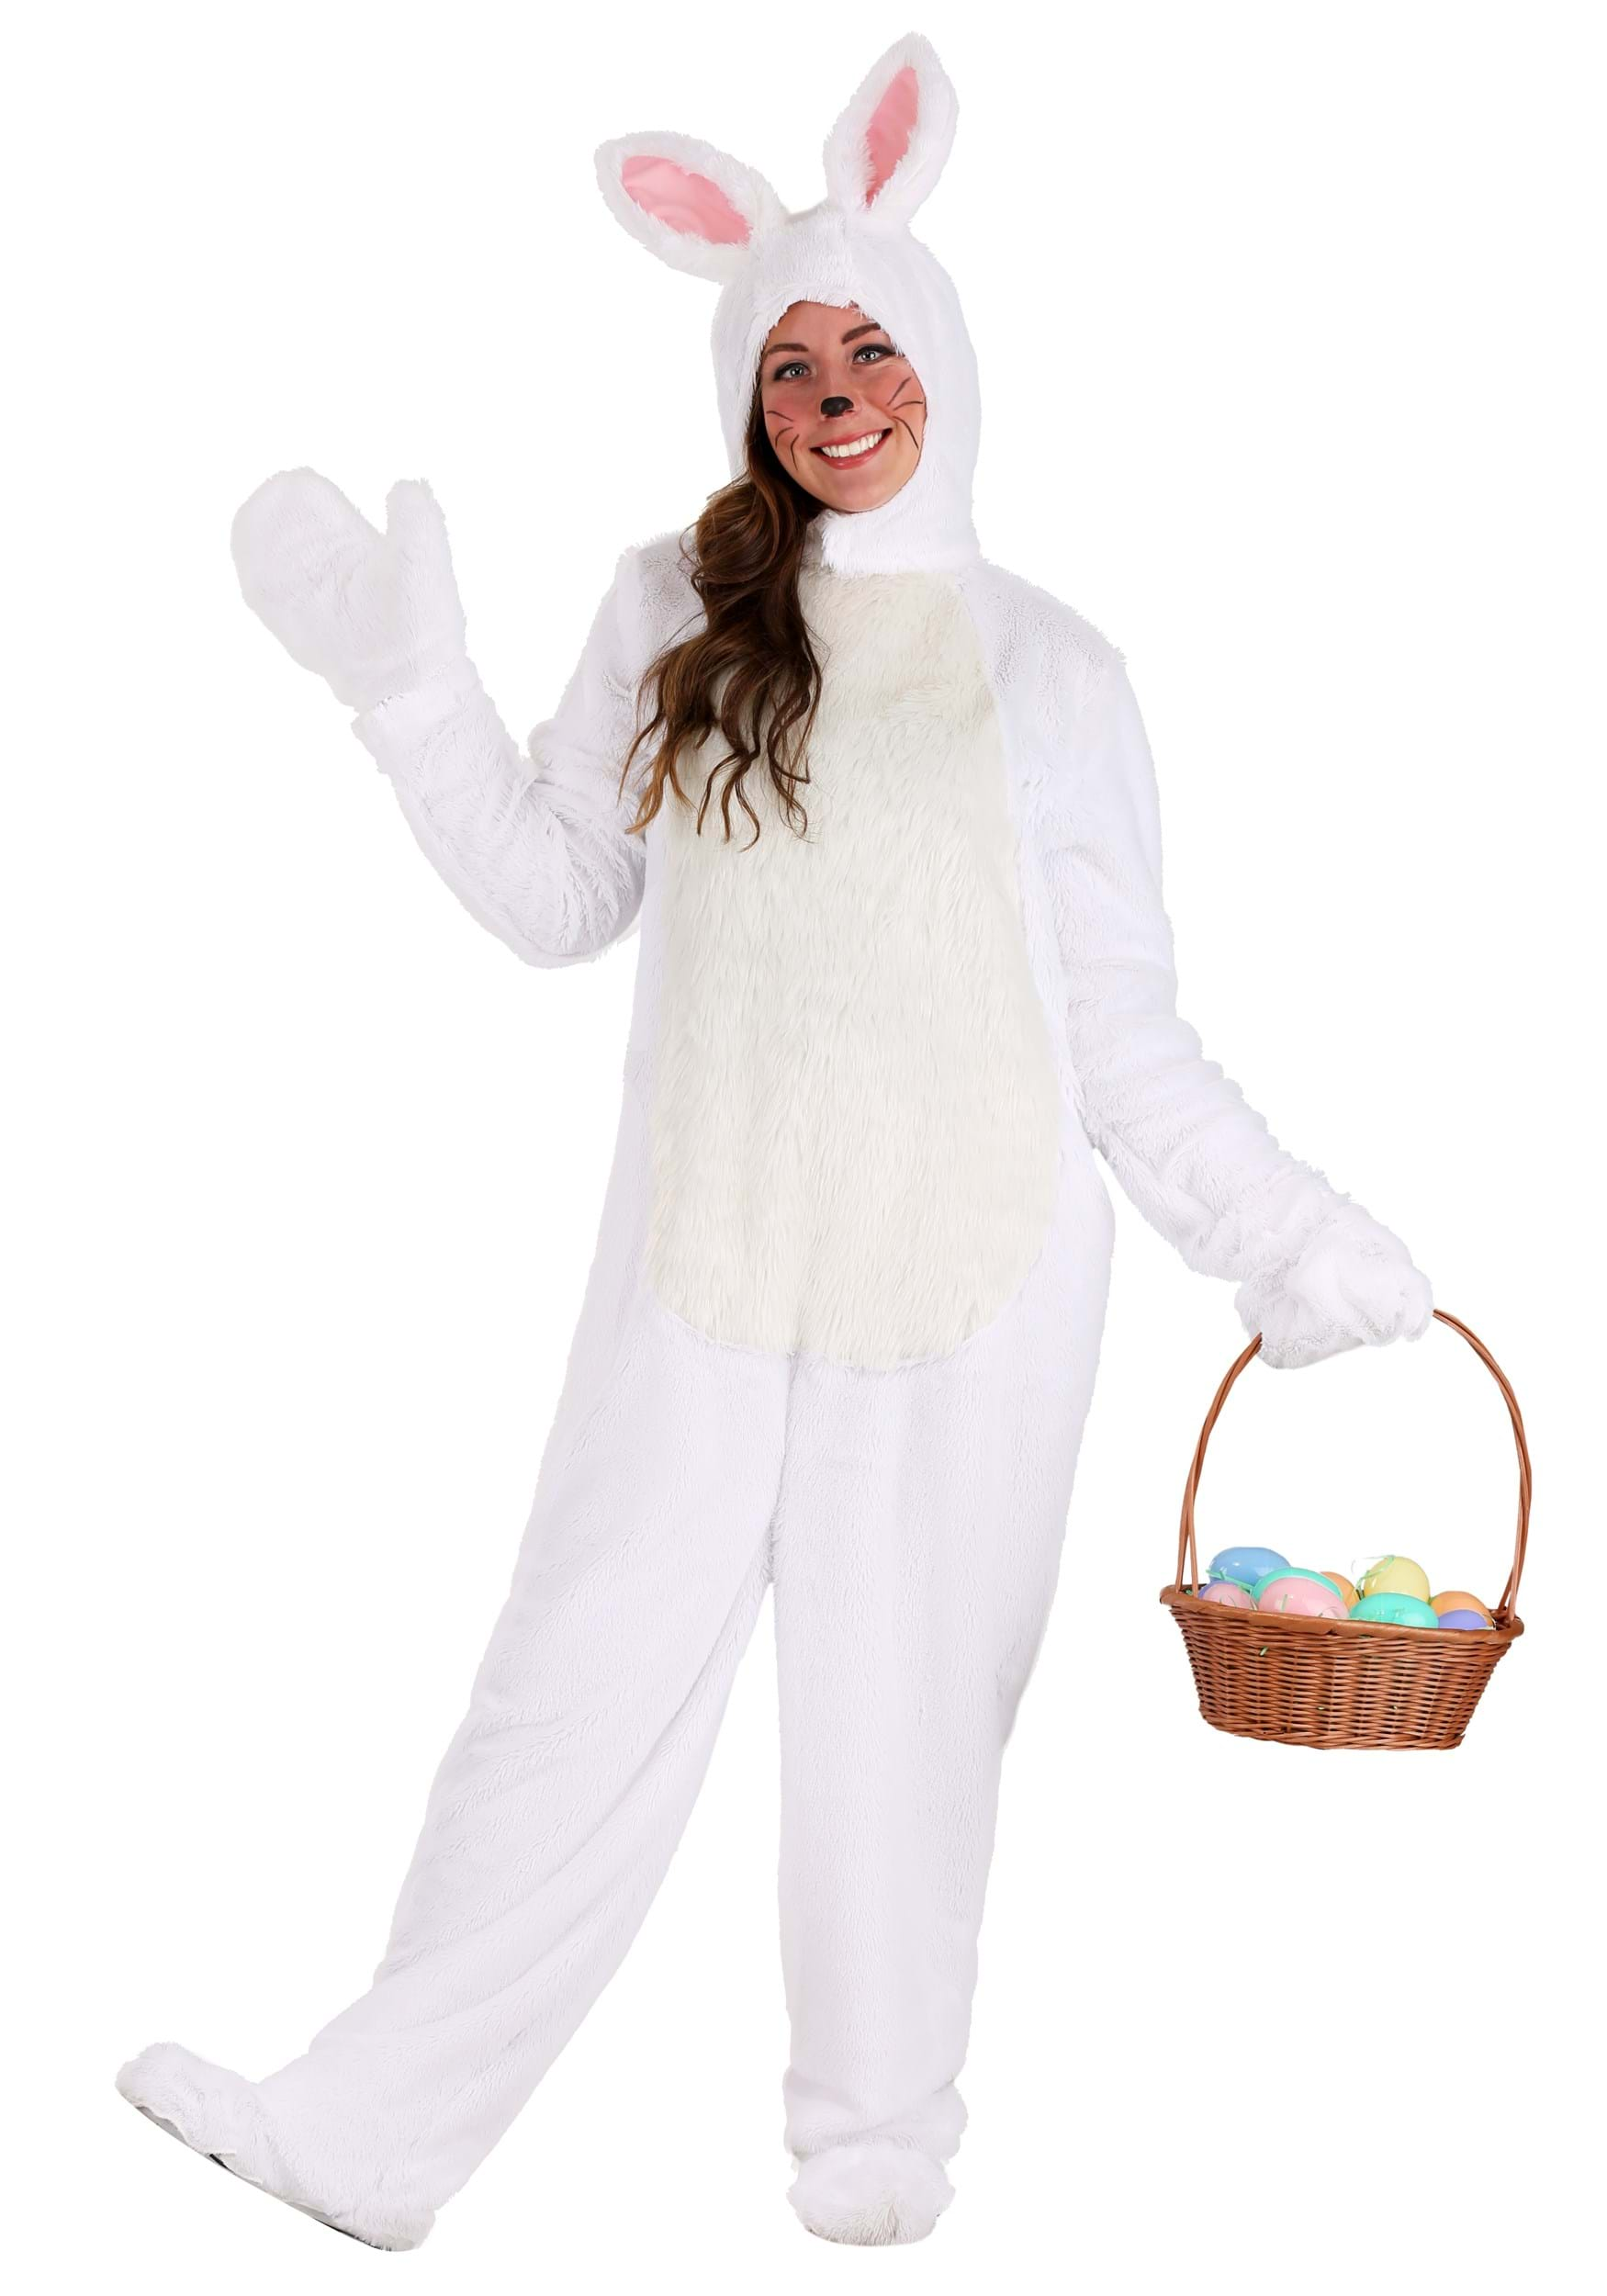 4fc241a5a57f Bunny Costumes   Suits For Adults   Kids - HalloweenCostumes.com